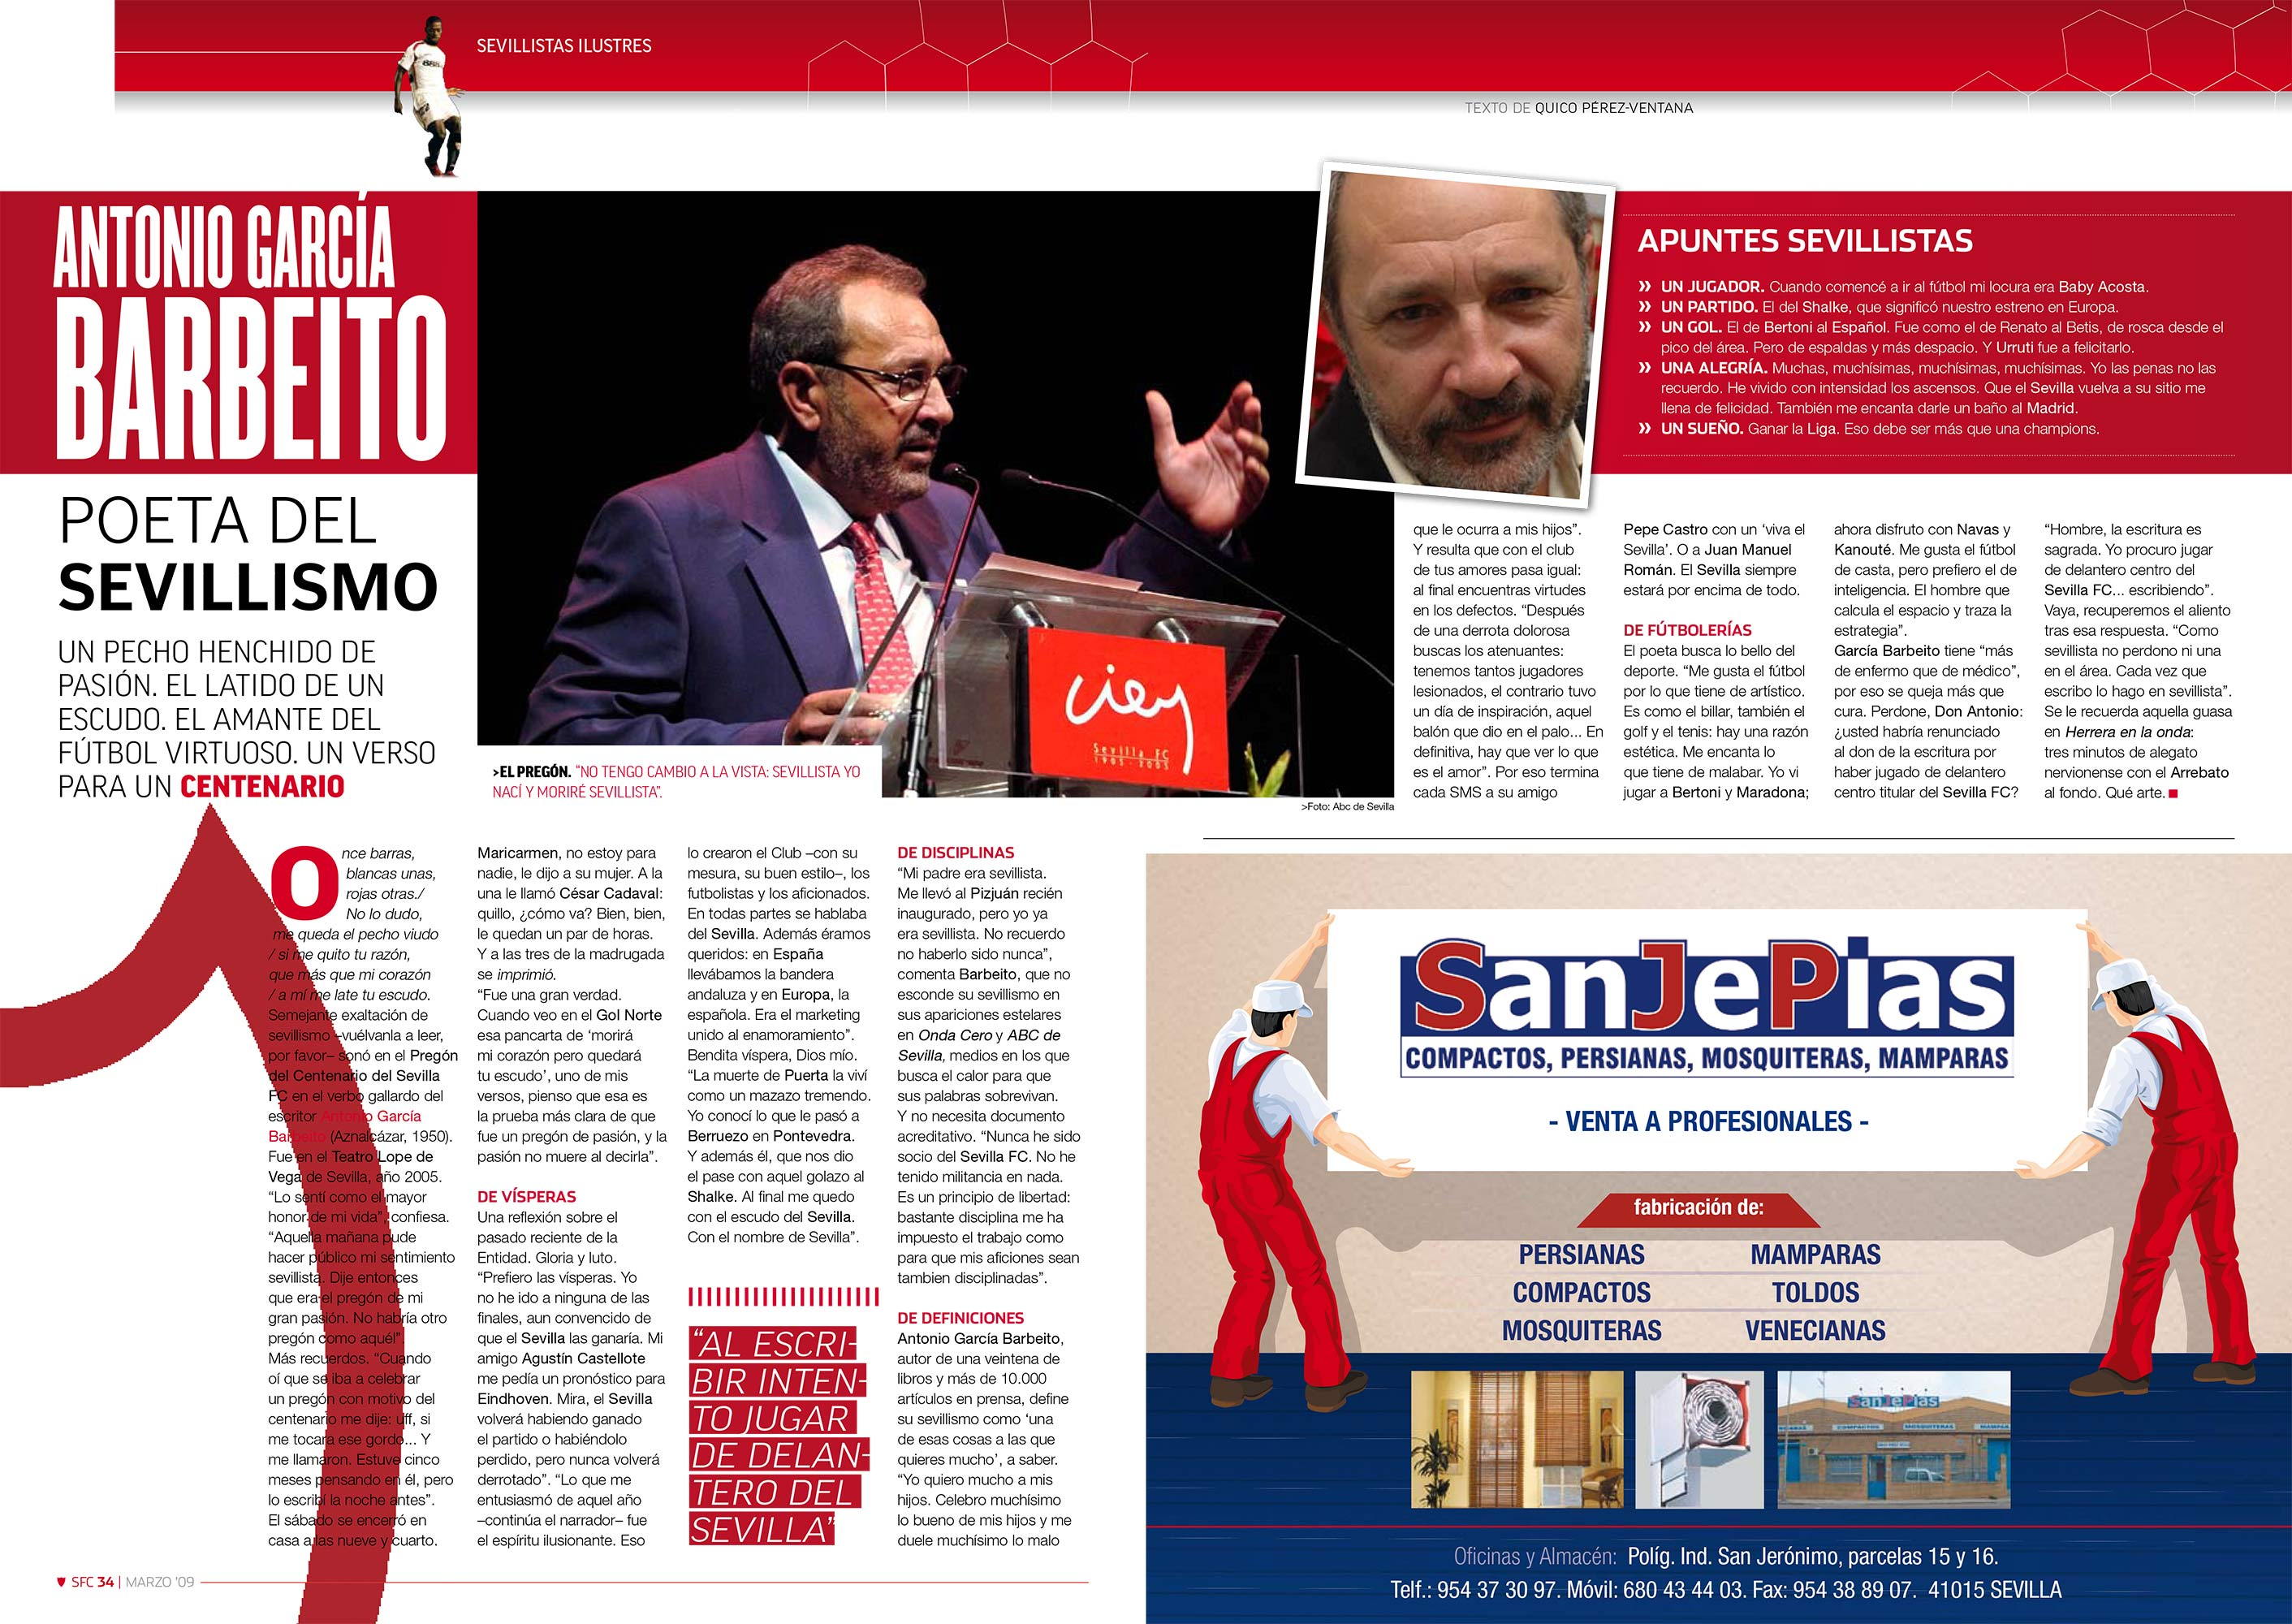 Antonio García Barbeito: poeta del sevillismo | Football Club | mar 2009